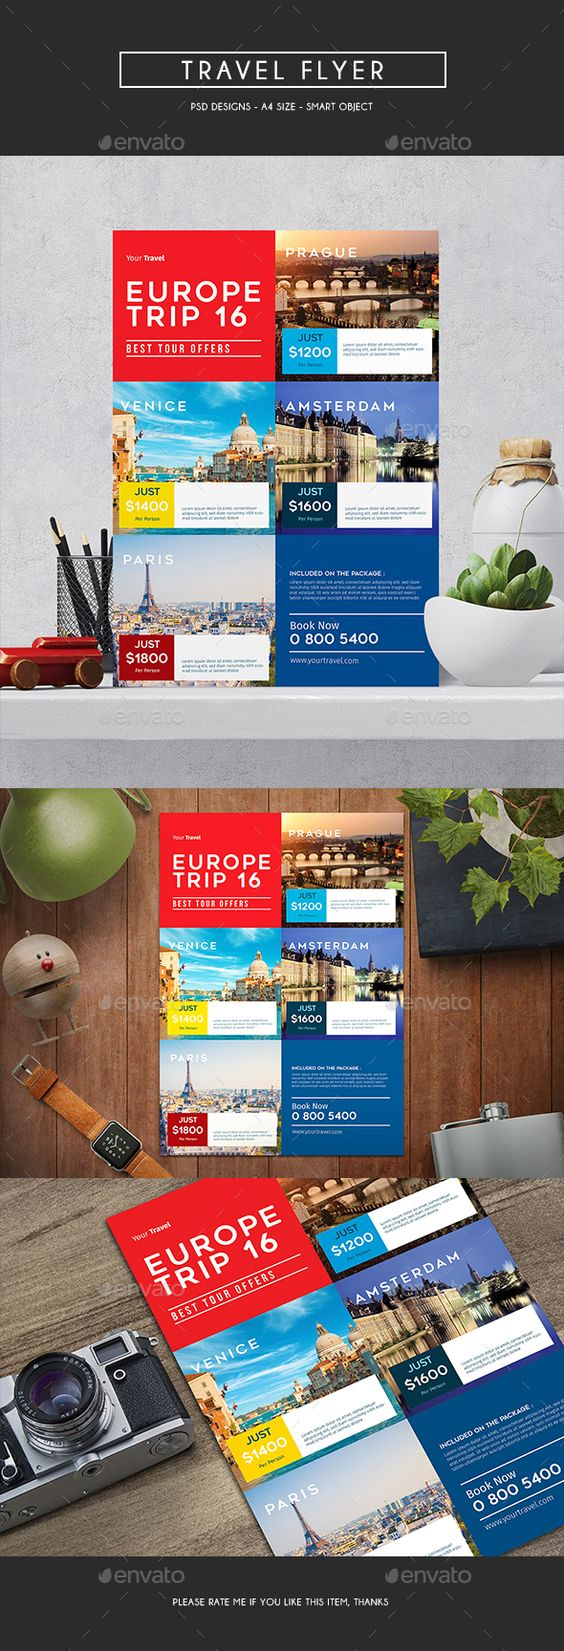 flyers flyer template and event flyers travel flyer design holiday event flyer template psd here